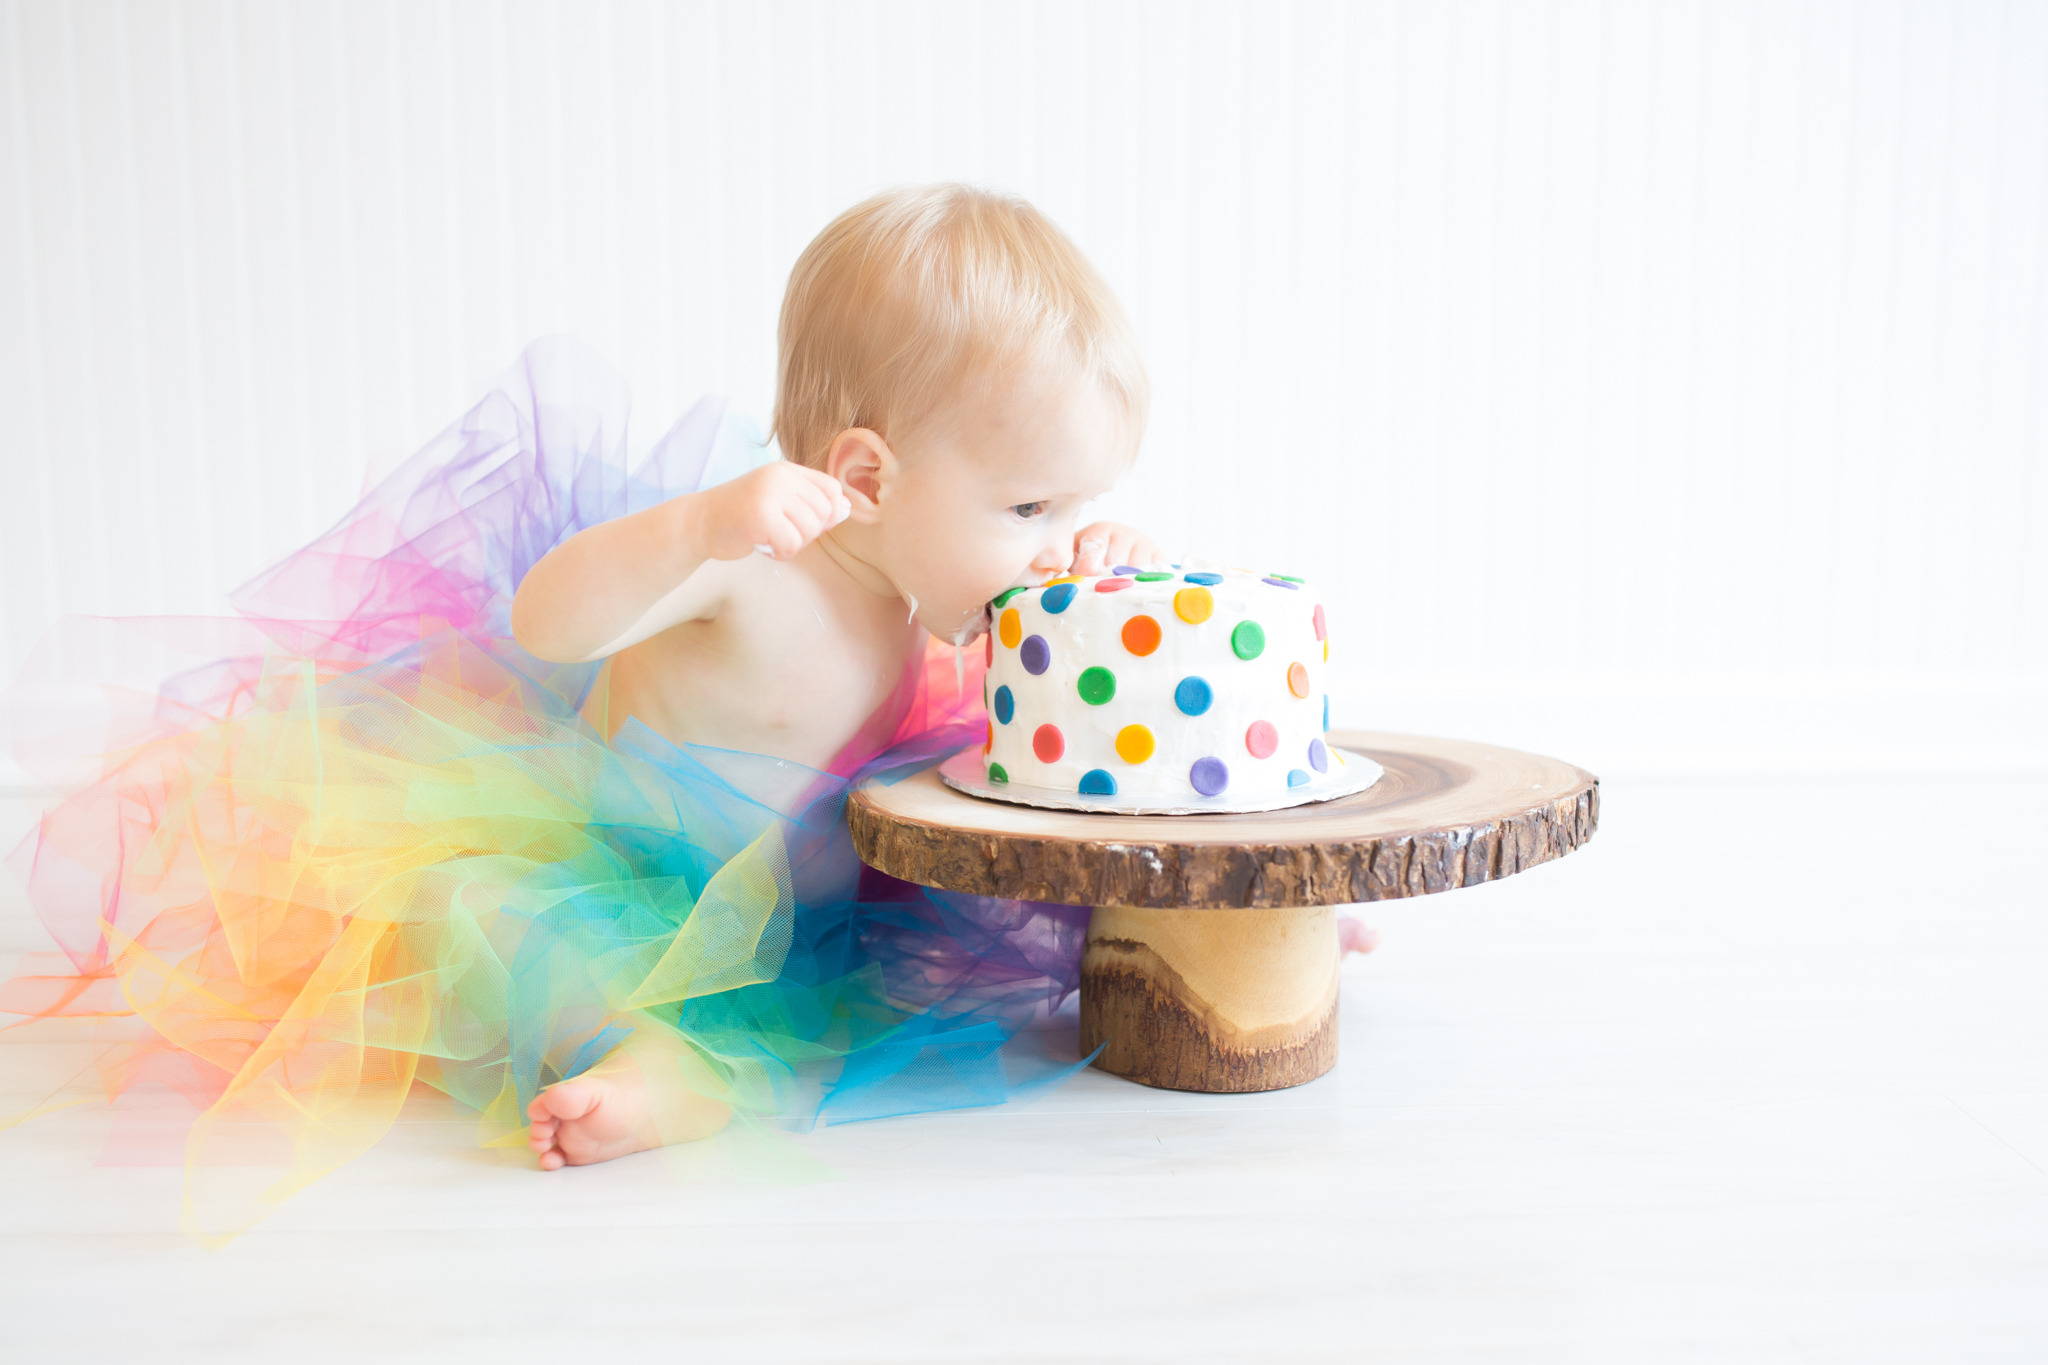 Milestone cake smash Newborn Studio Session | Cara Peterson Photography Rockford IL-12.jpg